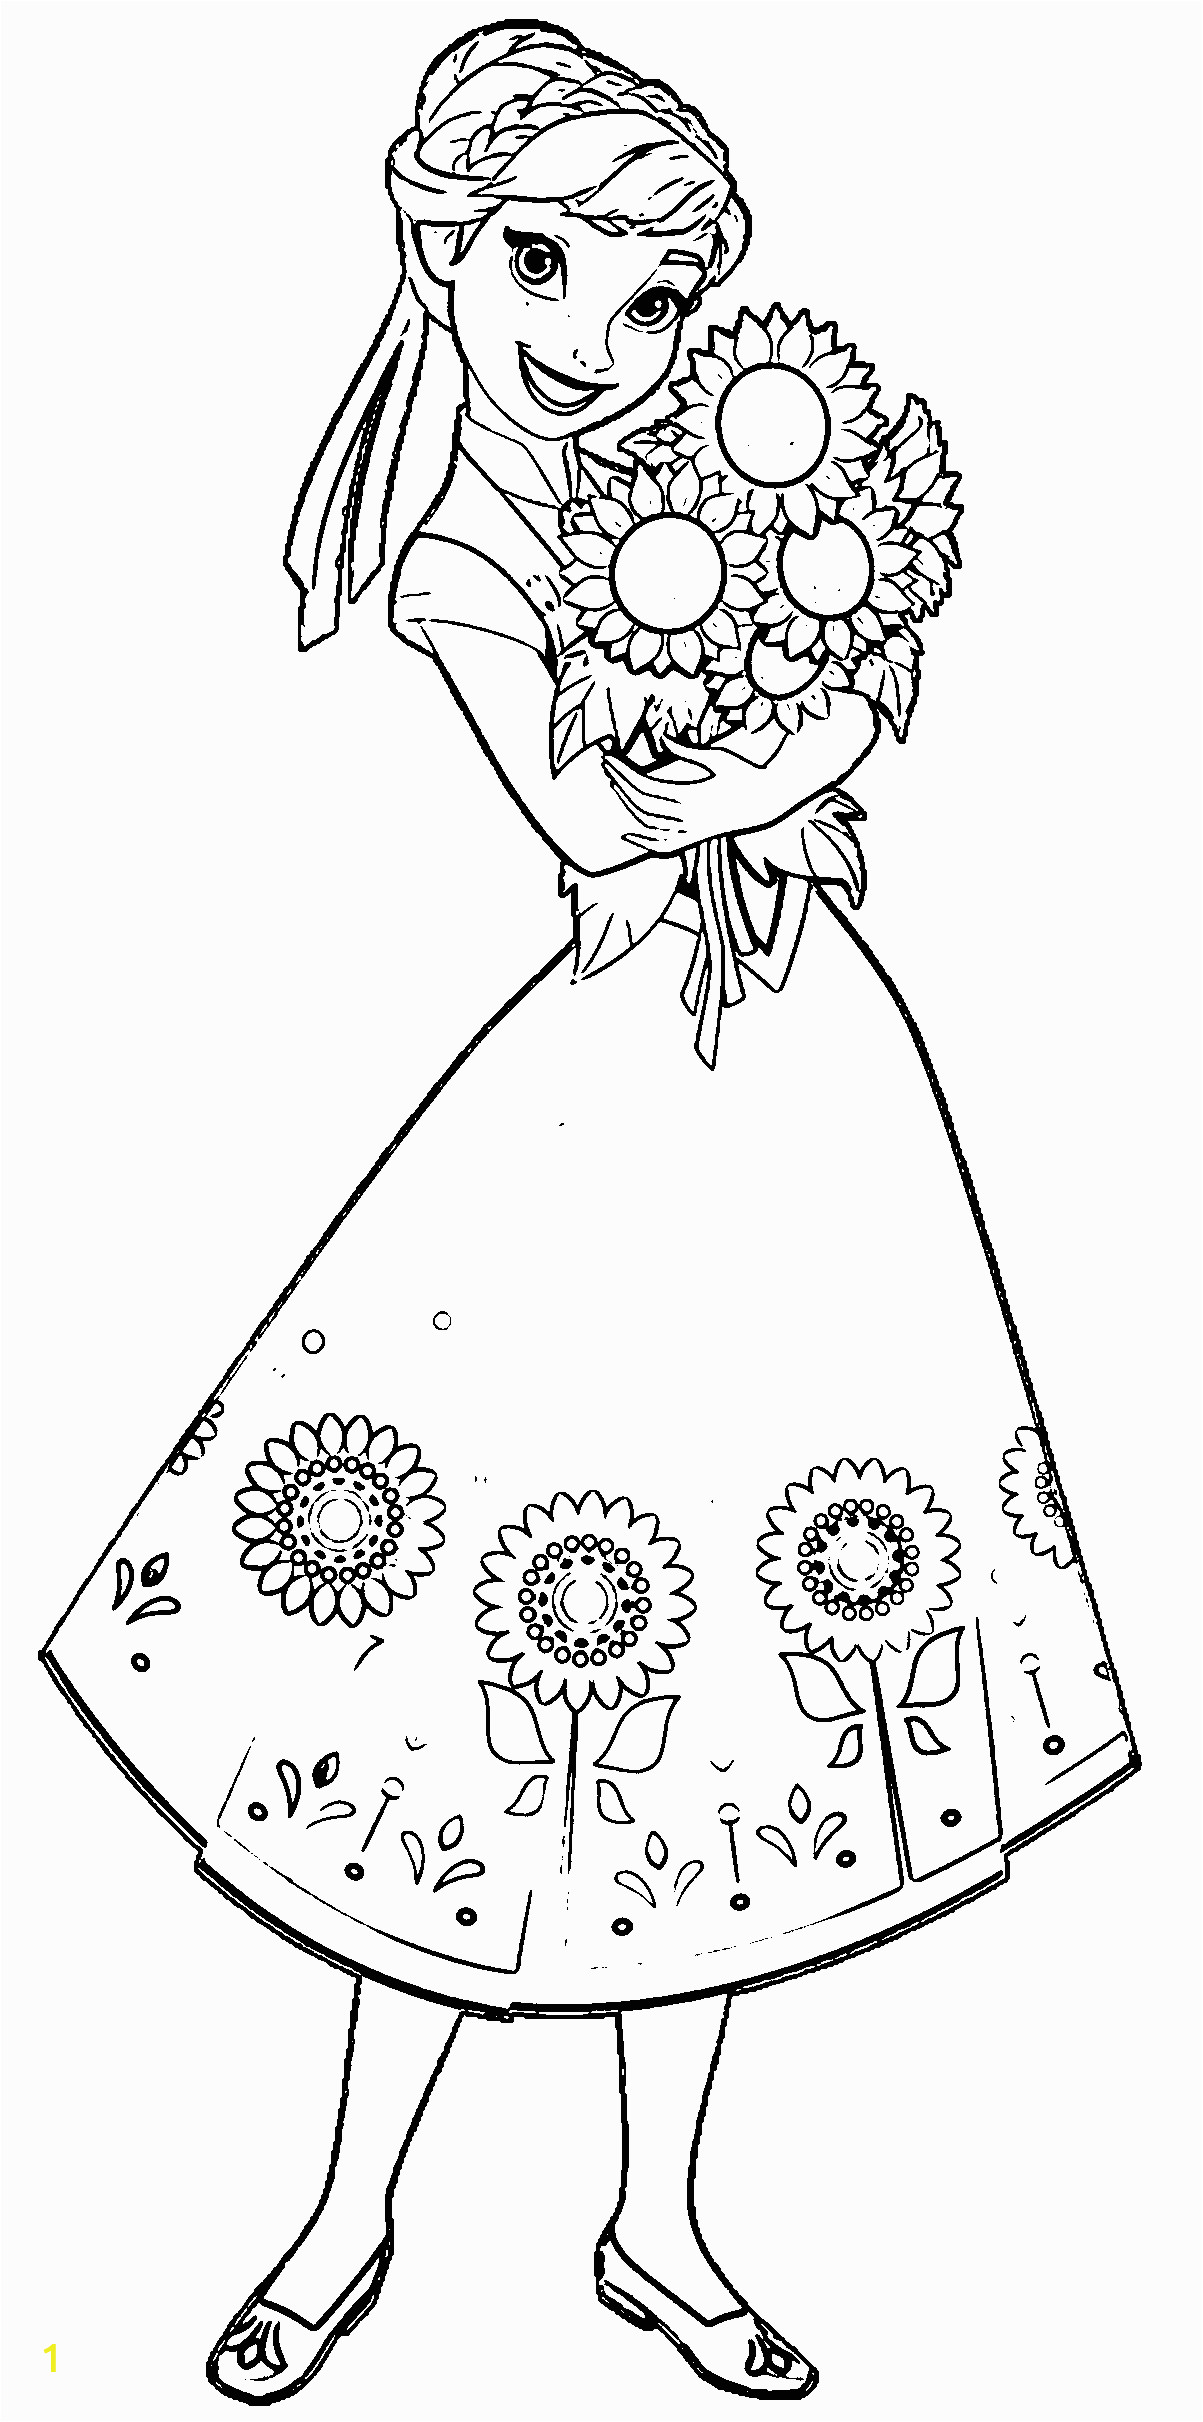 Printable Sunflower Coloring Page Pin On Coloring Pages